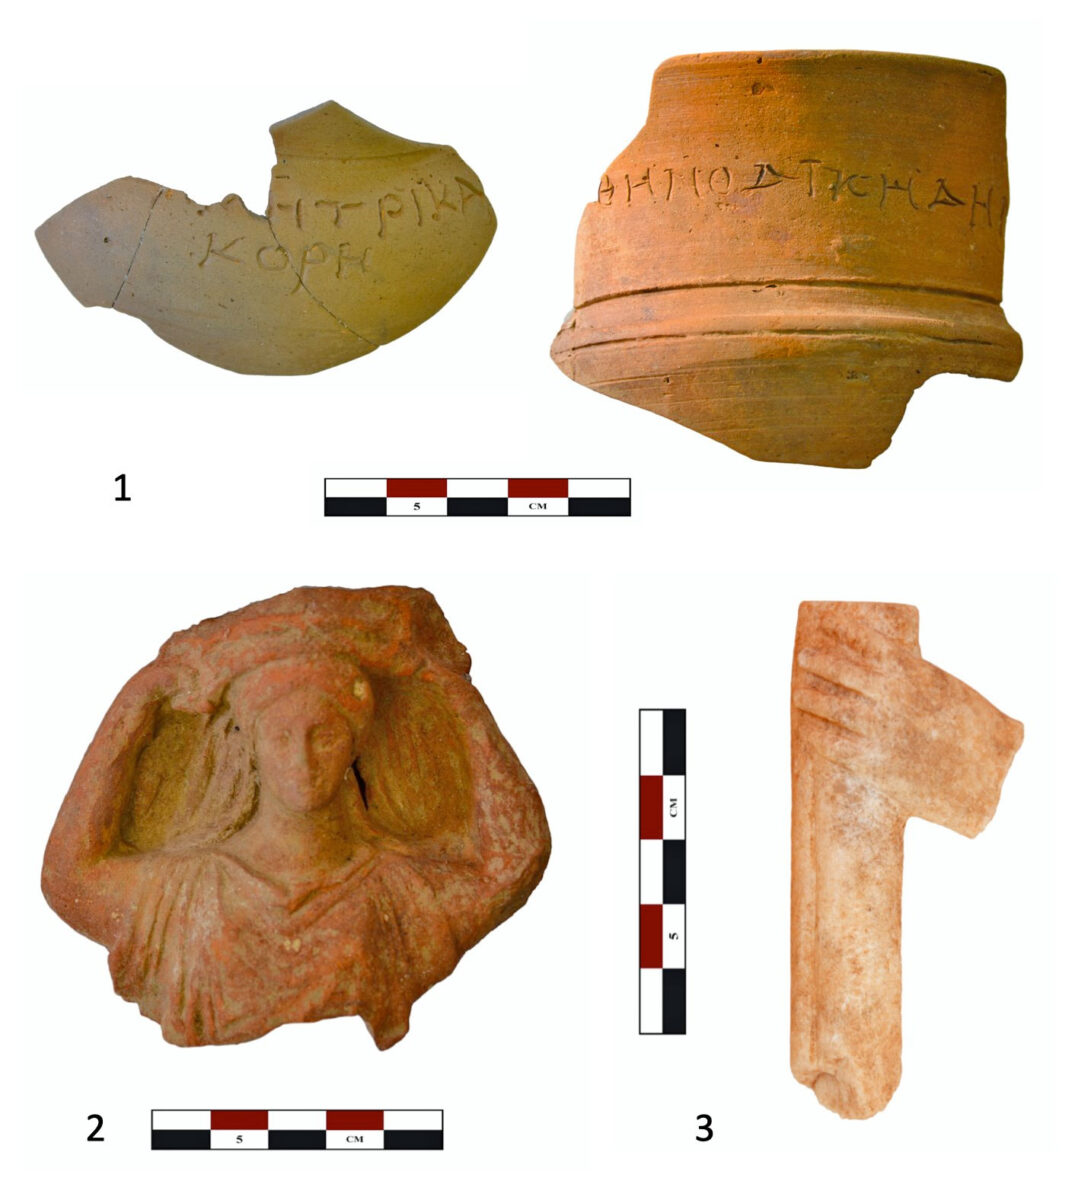 Fig. 10. 1: Graffiti on ritual vessels from the temple's interior with inscribed names of female deities (ΔΗΜΙΤΡΙ ΚΑΙ ΚΟΡΗ). 2: Clay hand of a ritual chest carrier.3: Hand holding torch, possibly from marble statue of Kore.